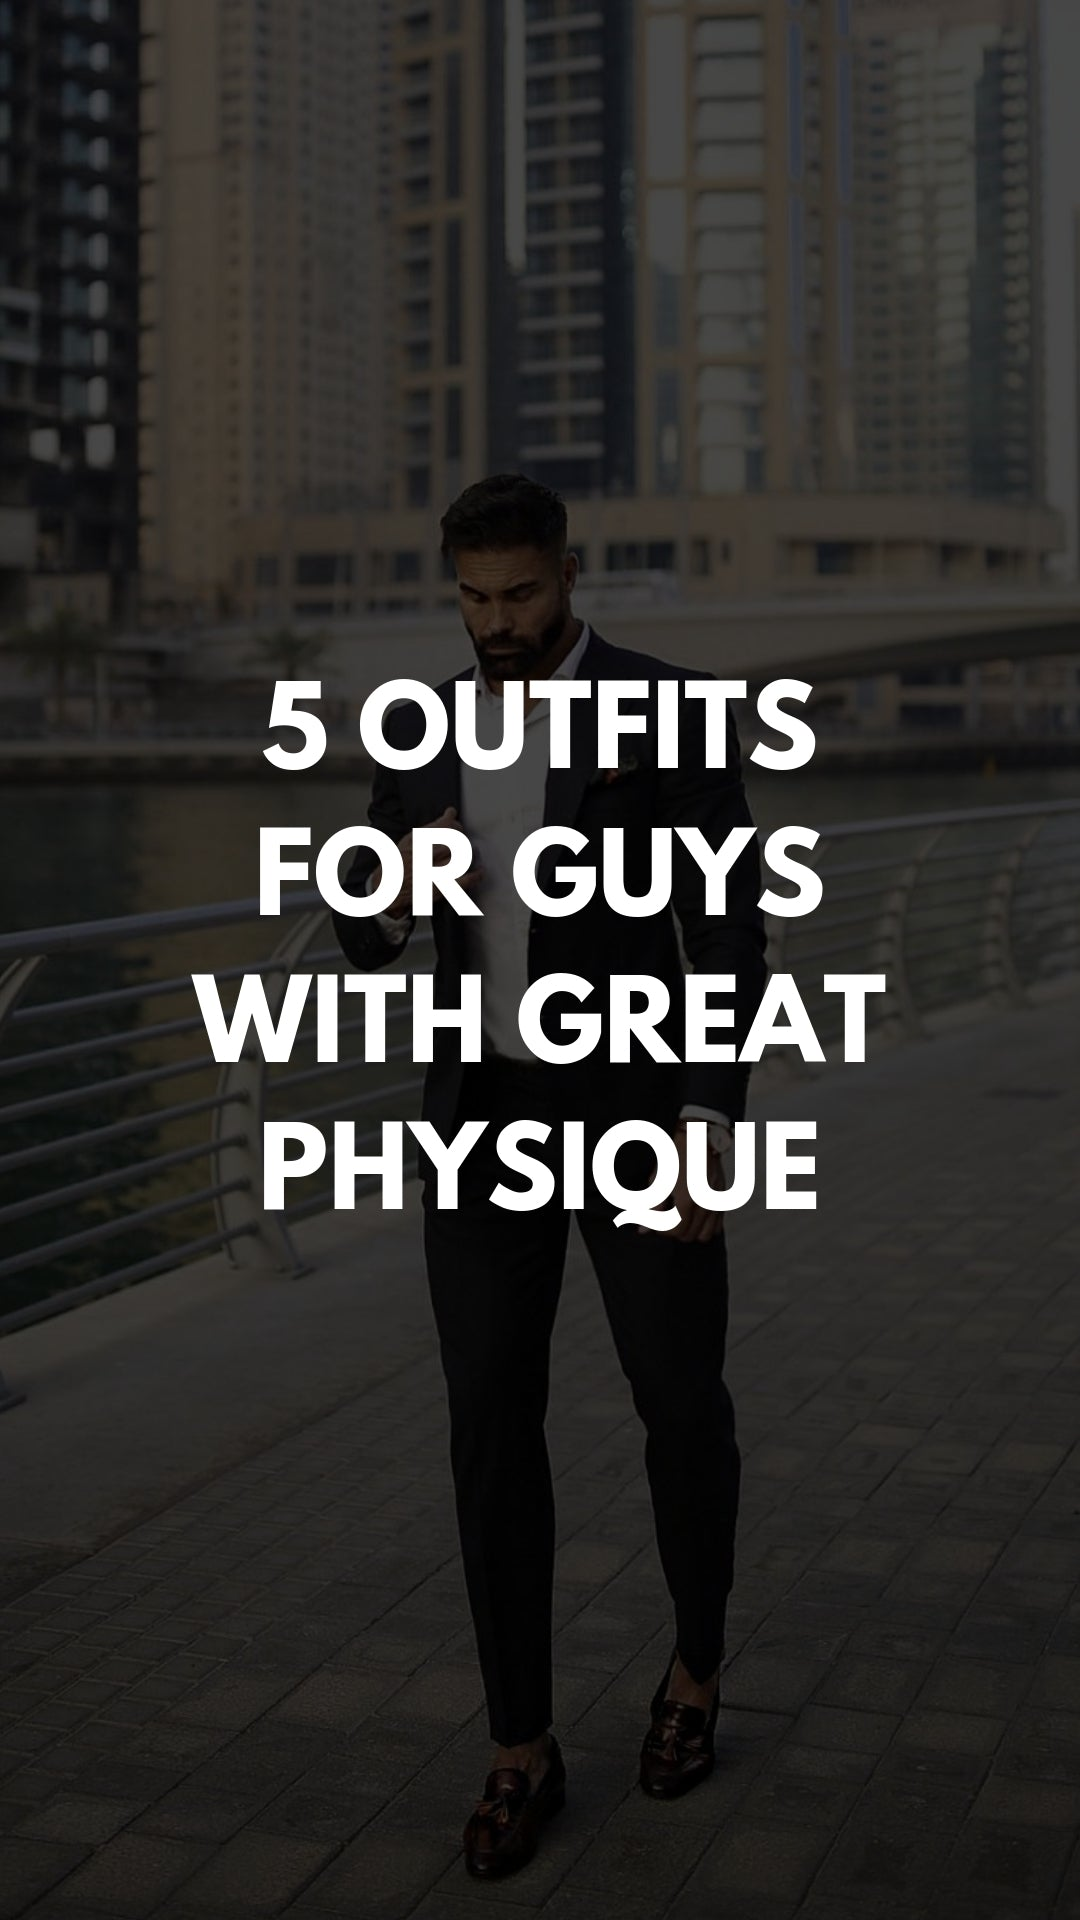 5 Outfits For Guys With Great Physique #casual #outfits #mensfashion #streetstyle